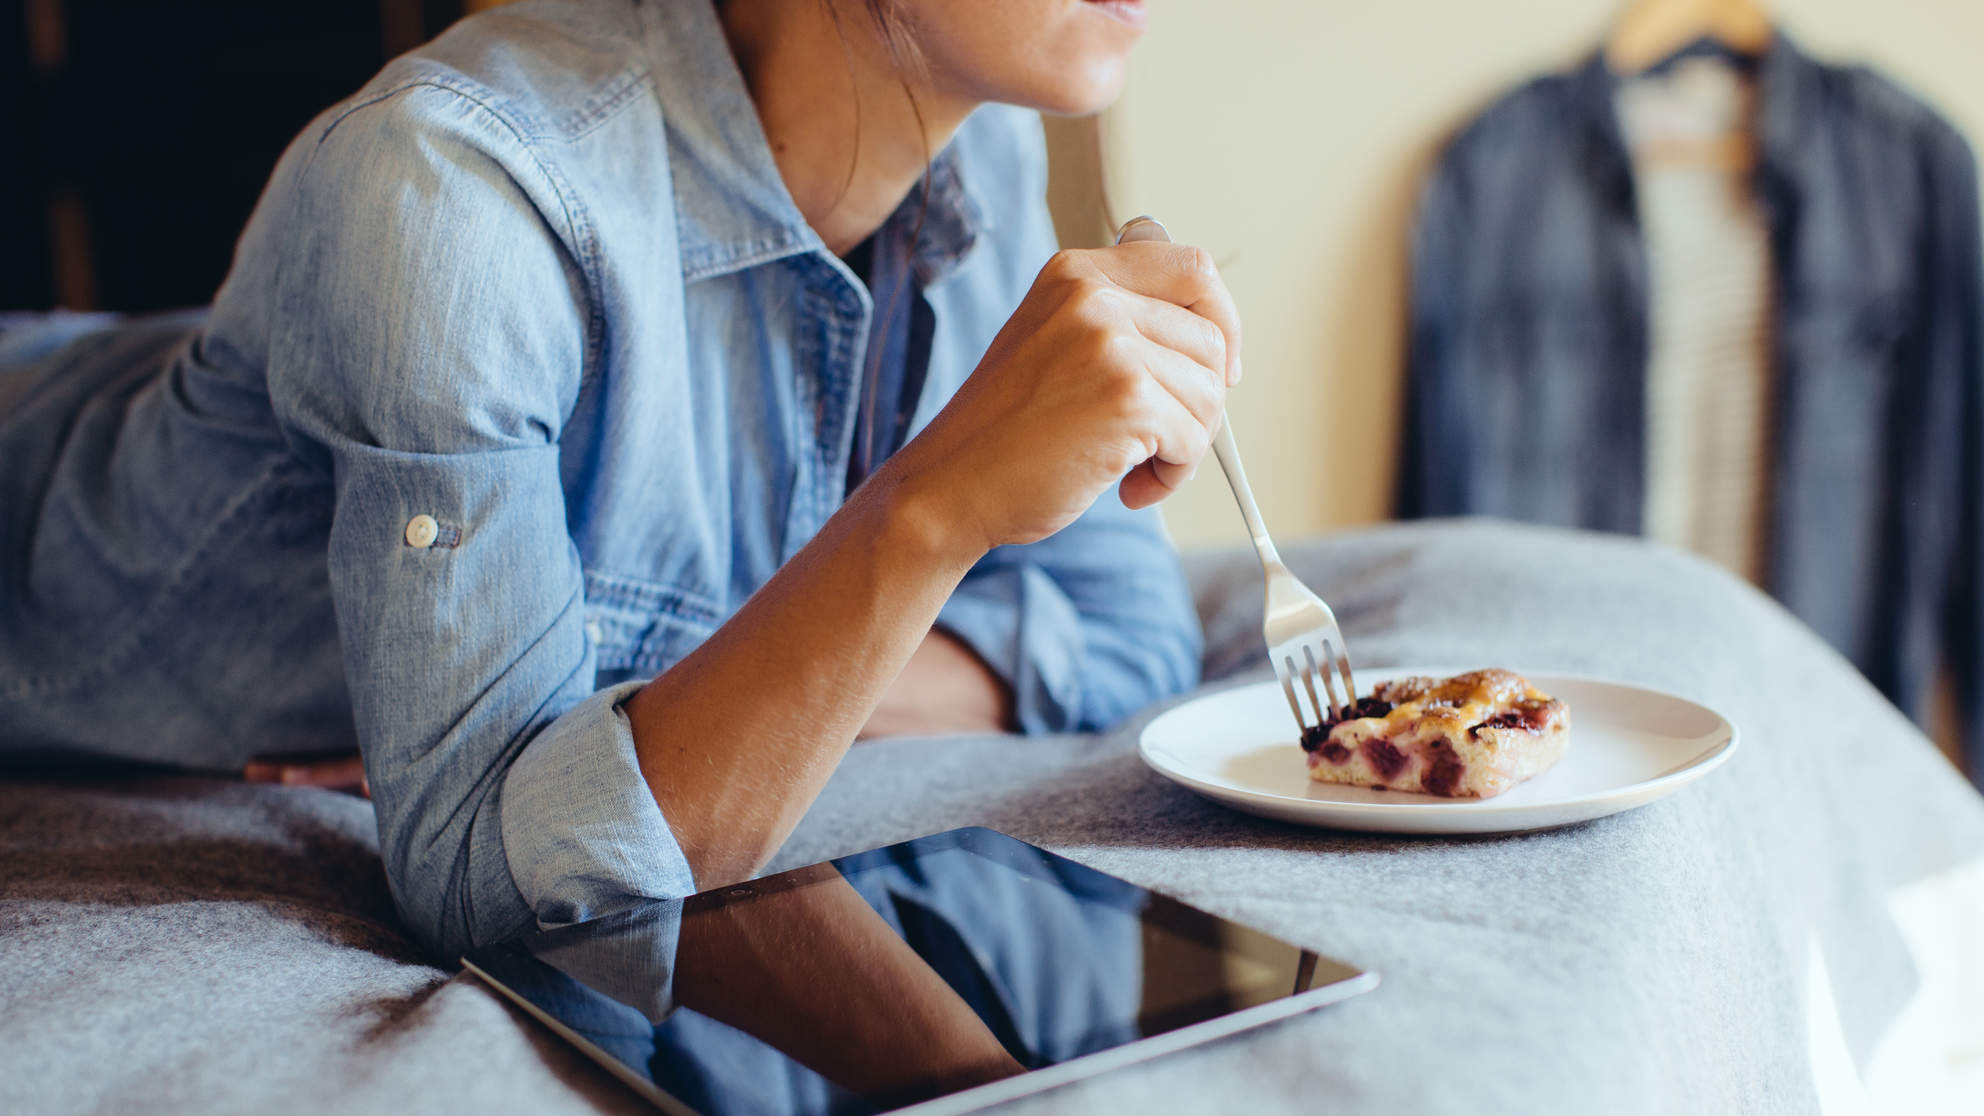 What to Do When Anxiety Is Driving You to Overeat